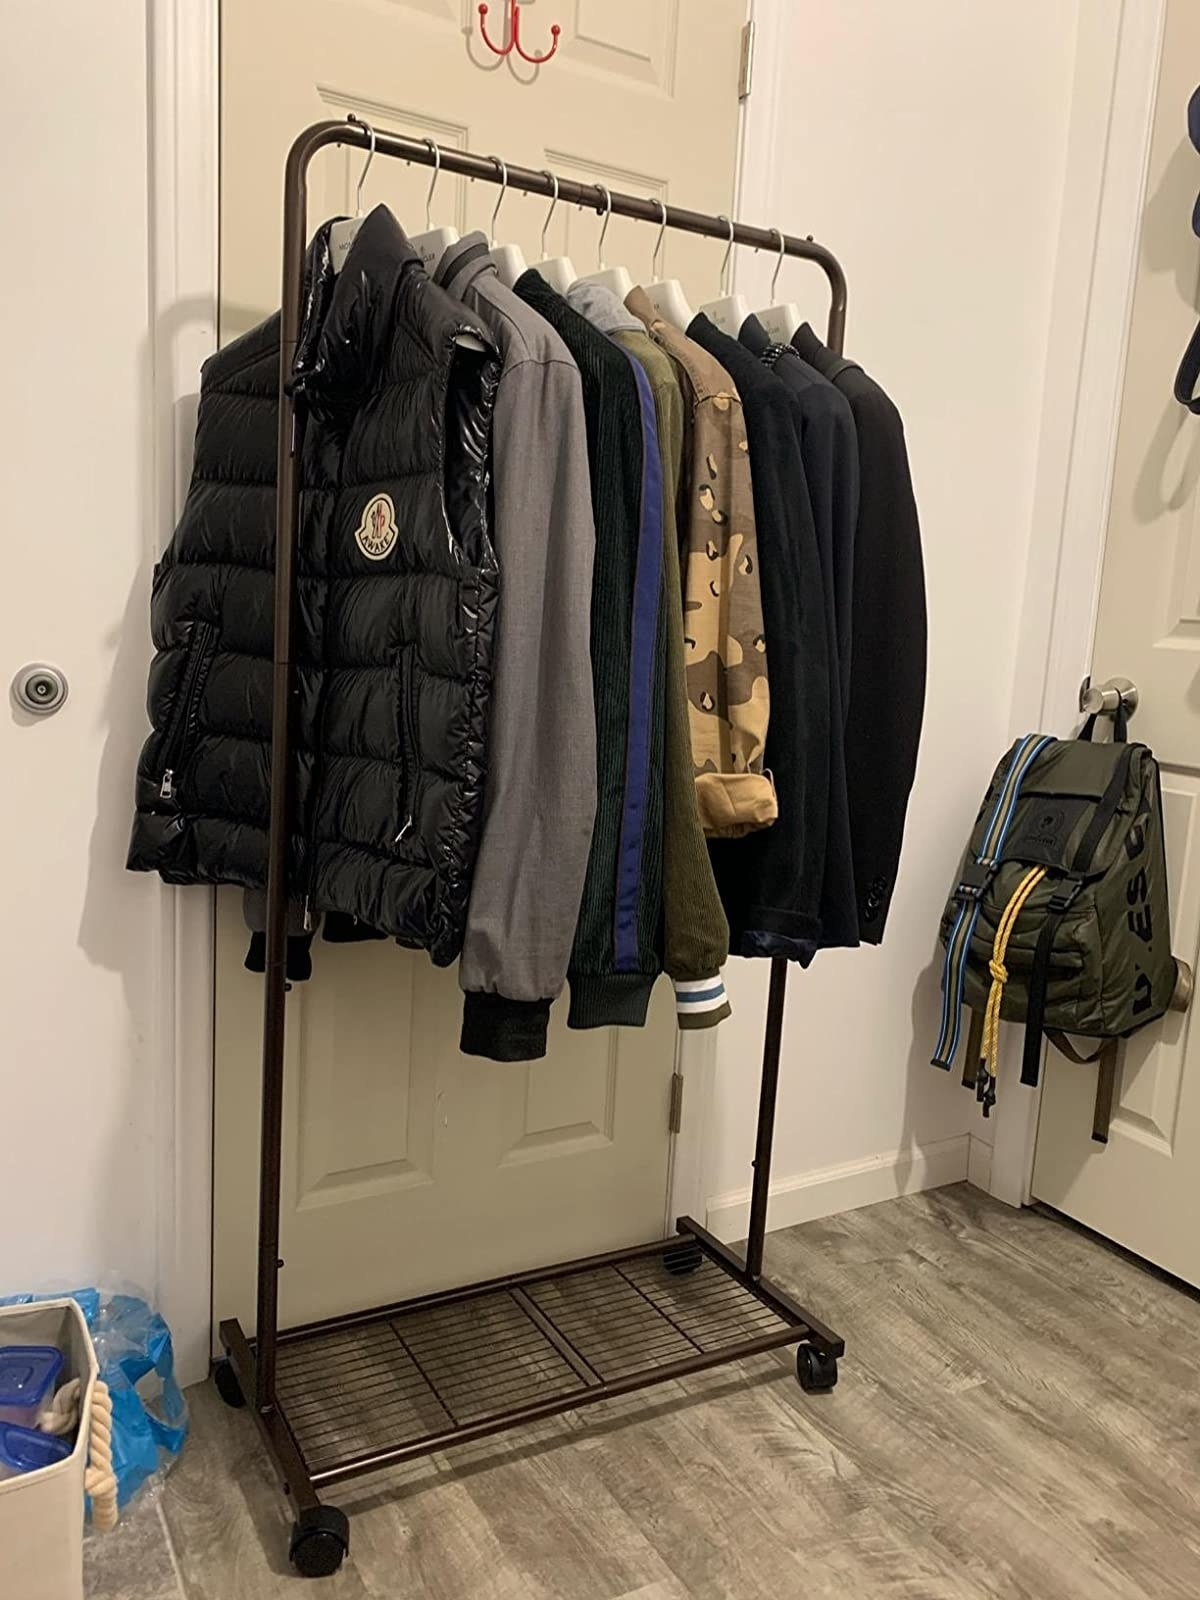 reviewer image of coats on hangers hanging from a customer's simple garment rack